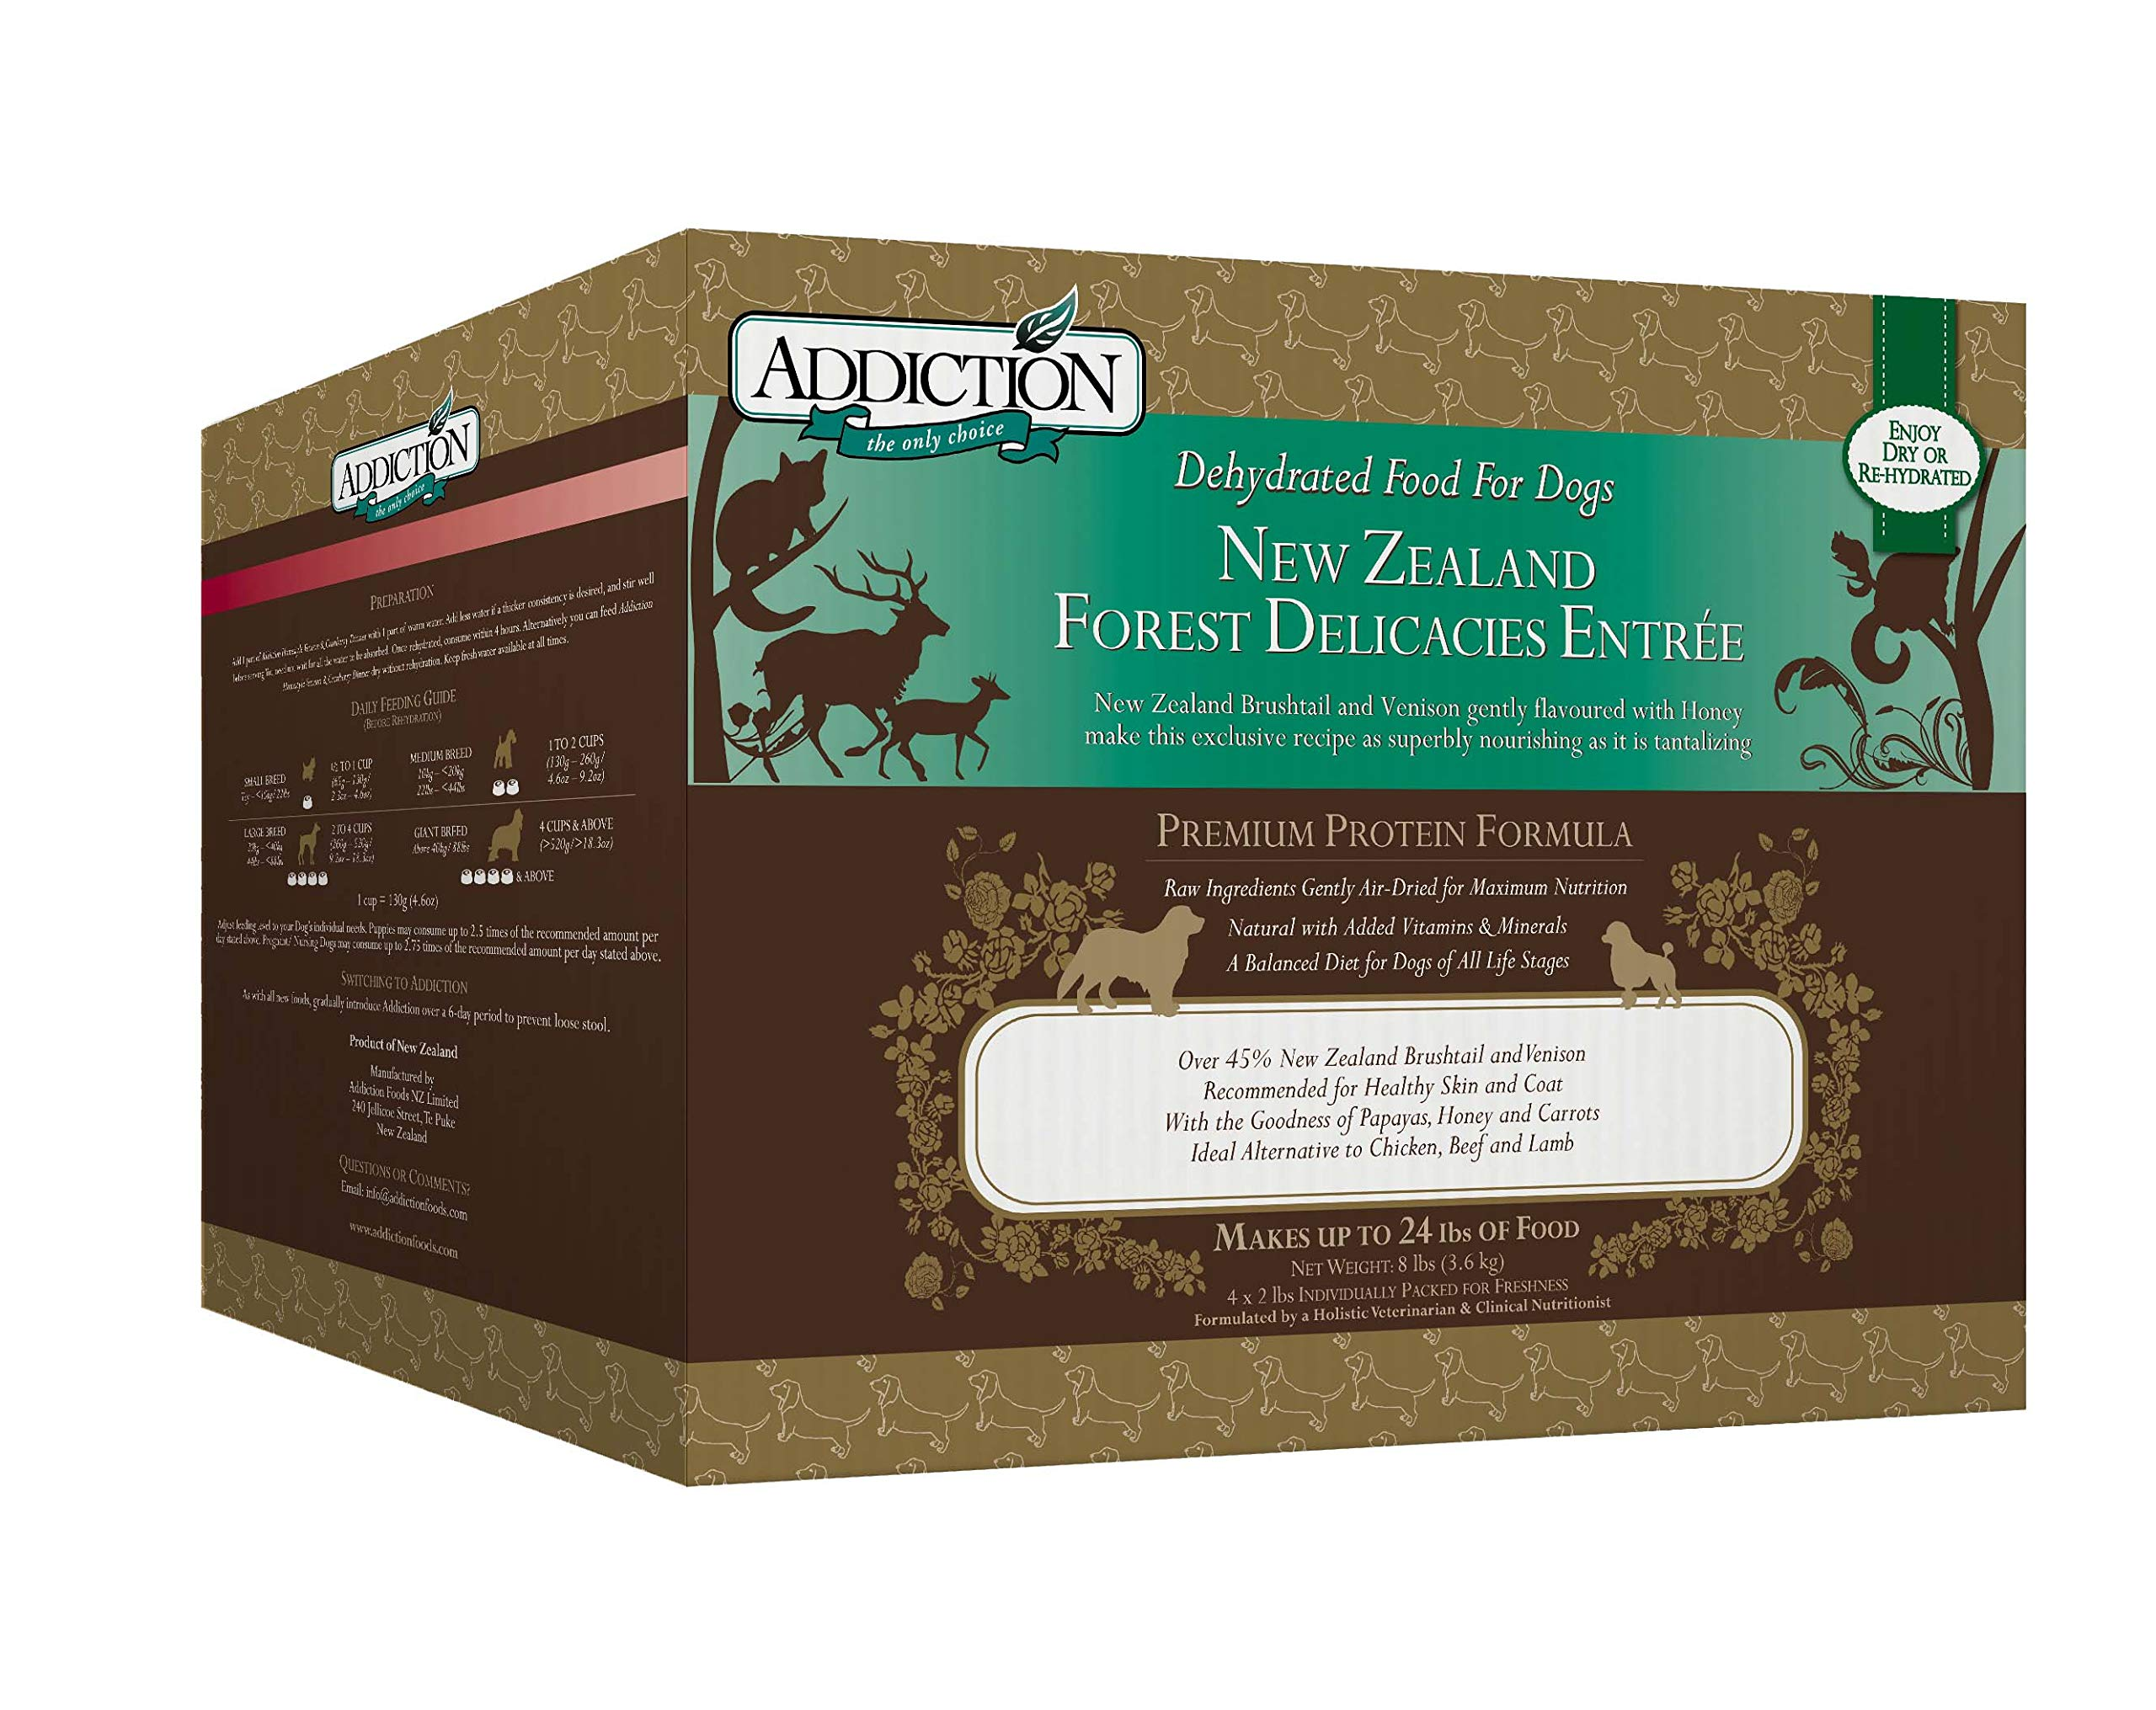 Addiction New Zealand Forest Delicacies Filler Free Dehydrated Dog Food, 8 Lb by Addiction Pet Foods